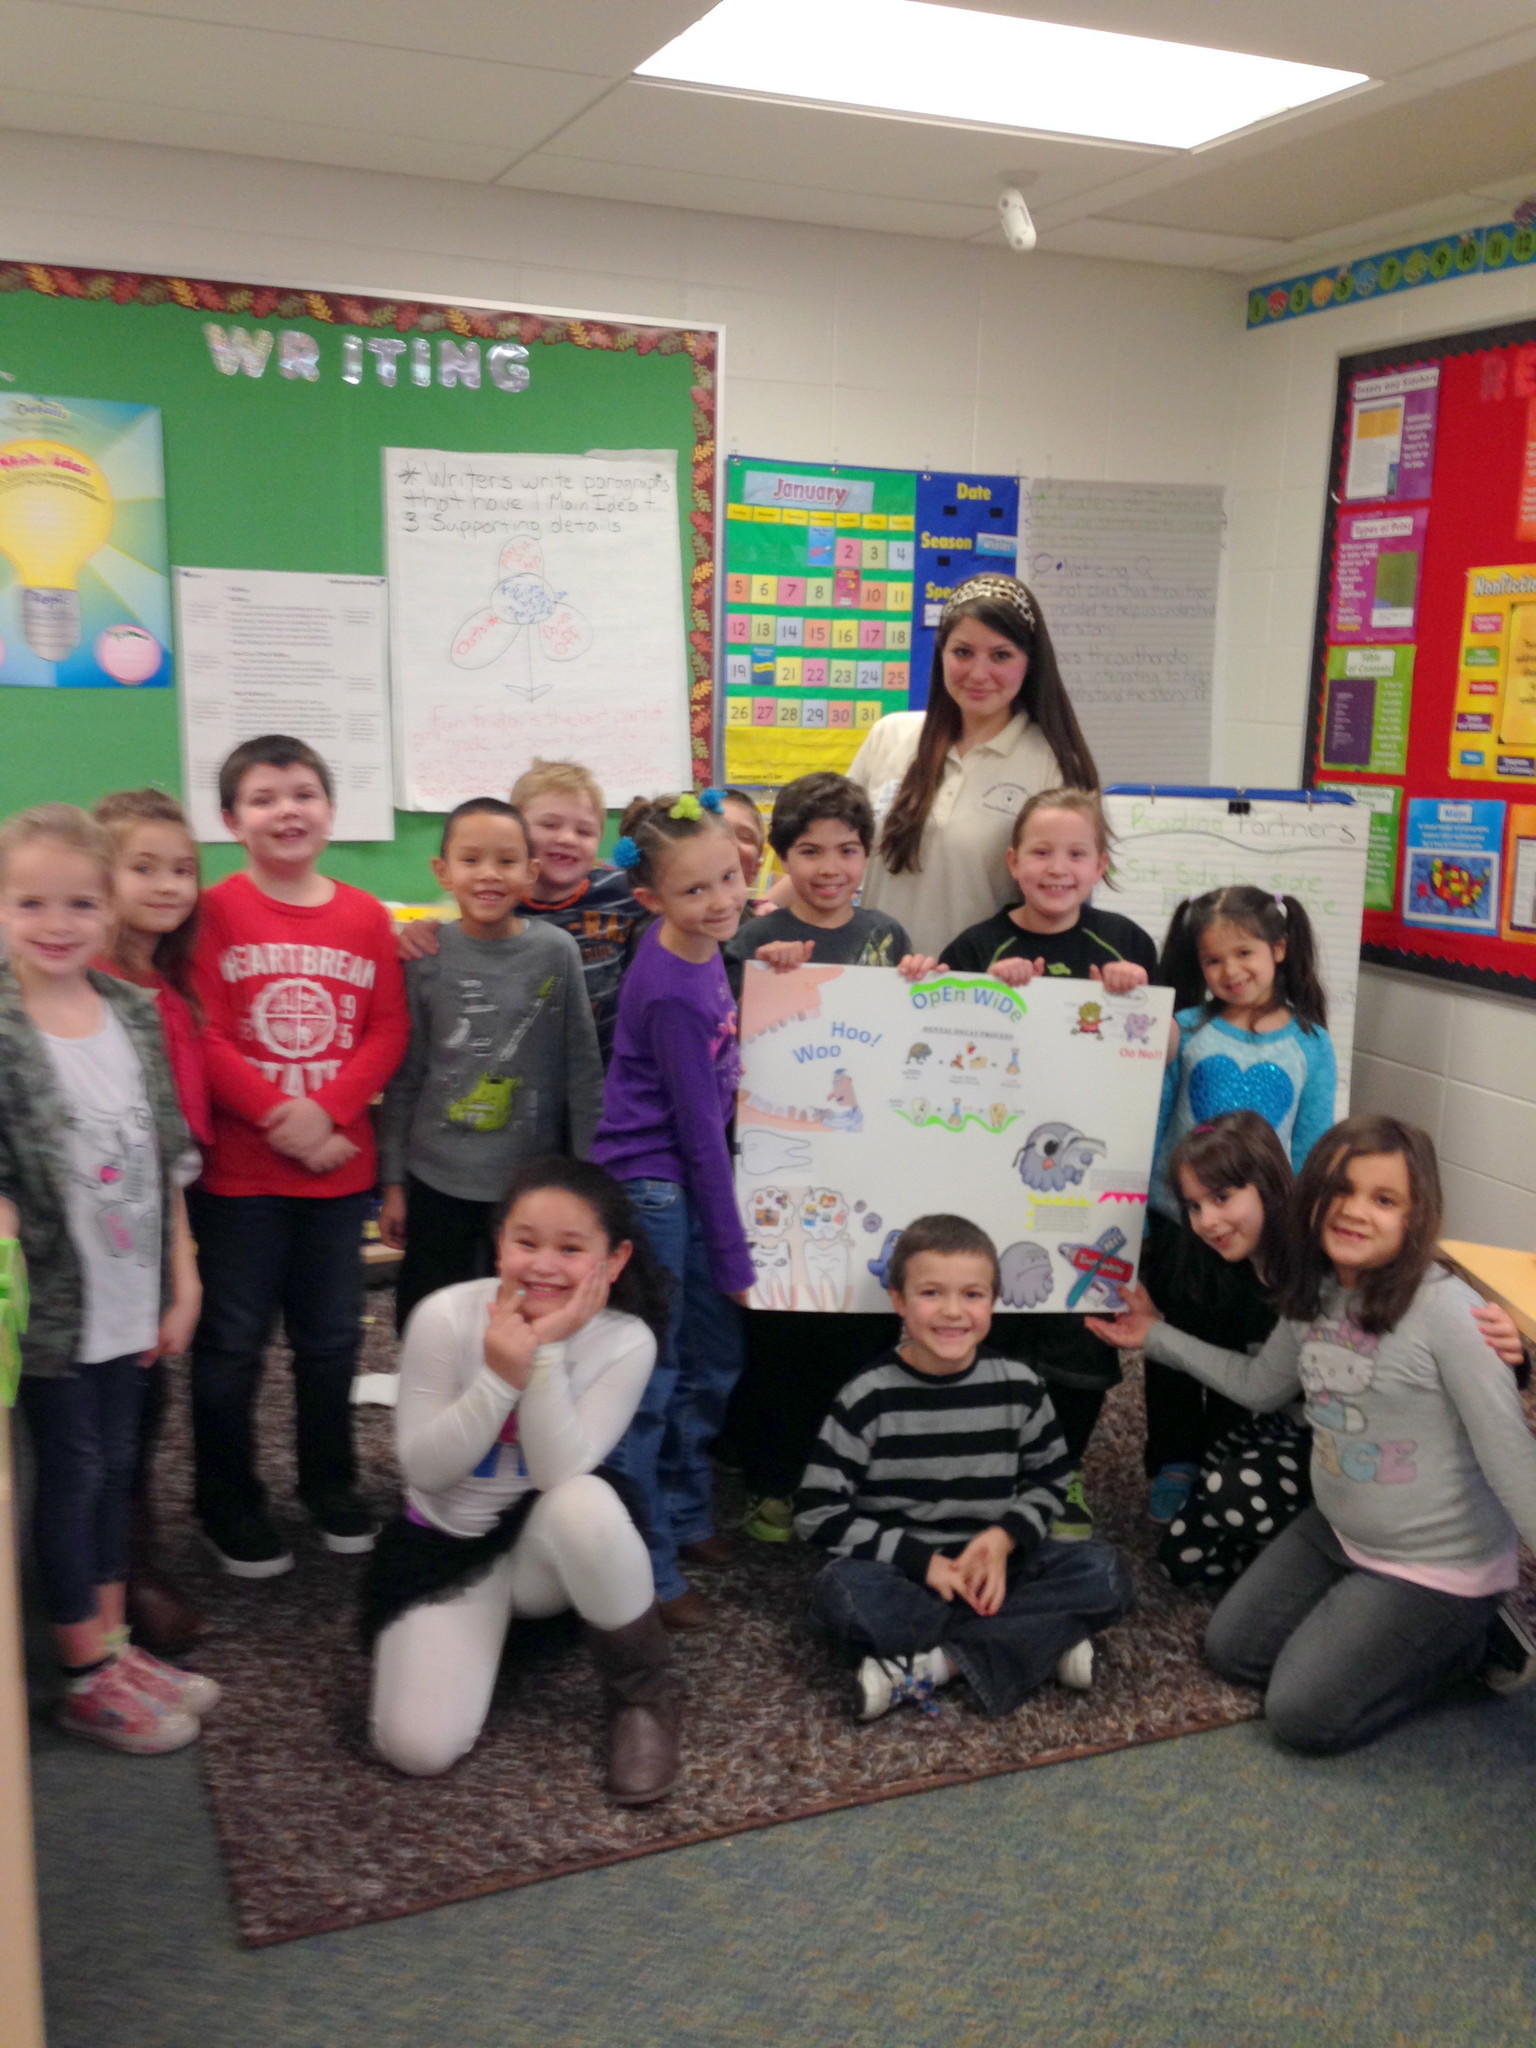 Ms. McCoy's second grade class at Louis Toffolon Elementary School with guest Ms. Luisa Gonzalez.